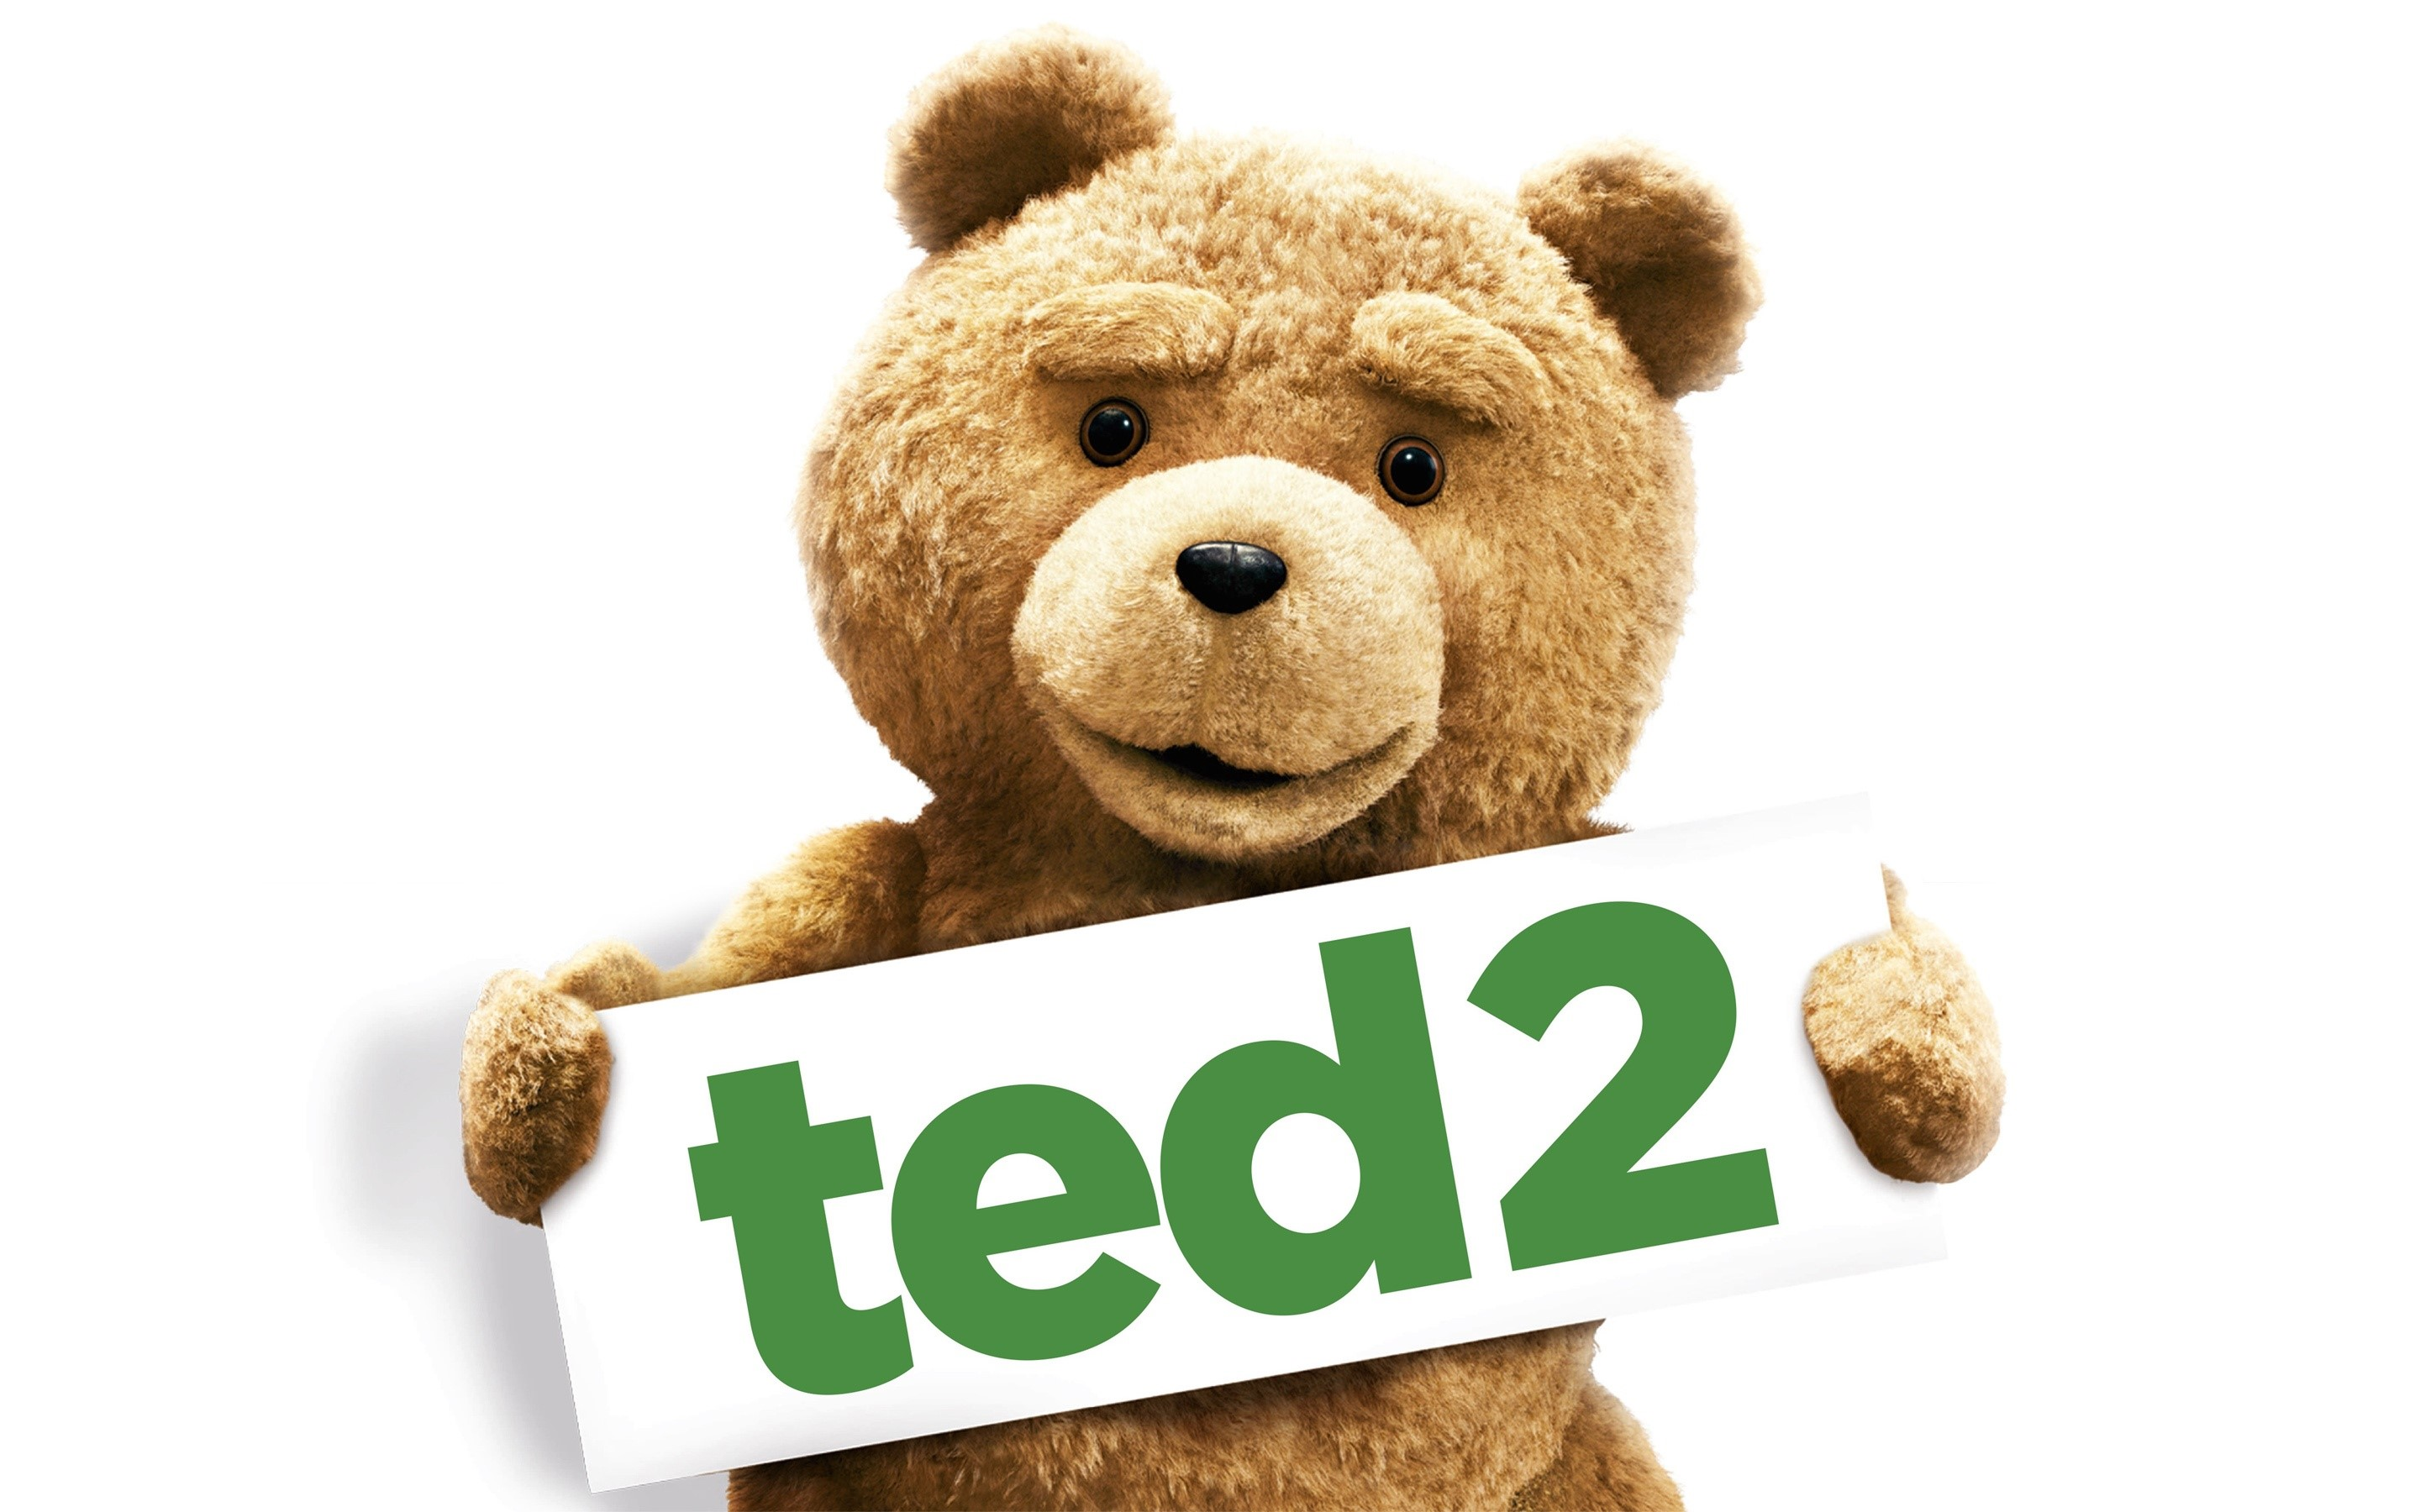 Wallpaper Ted 2